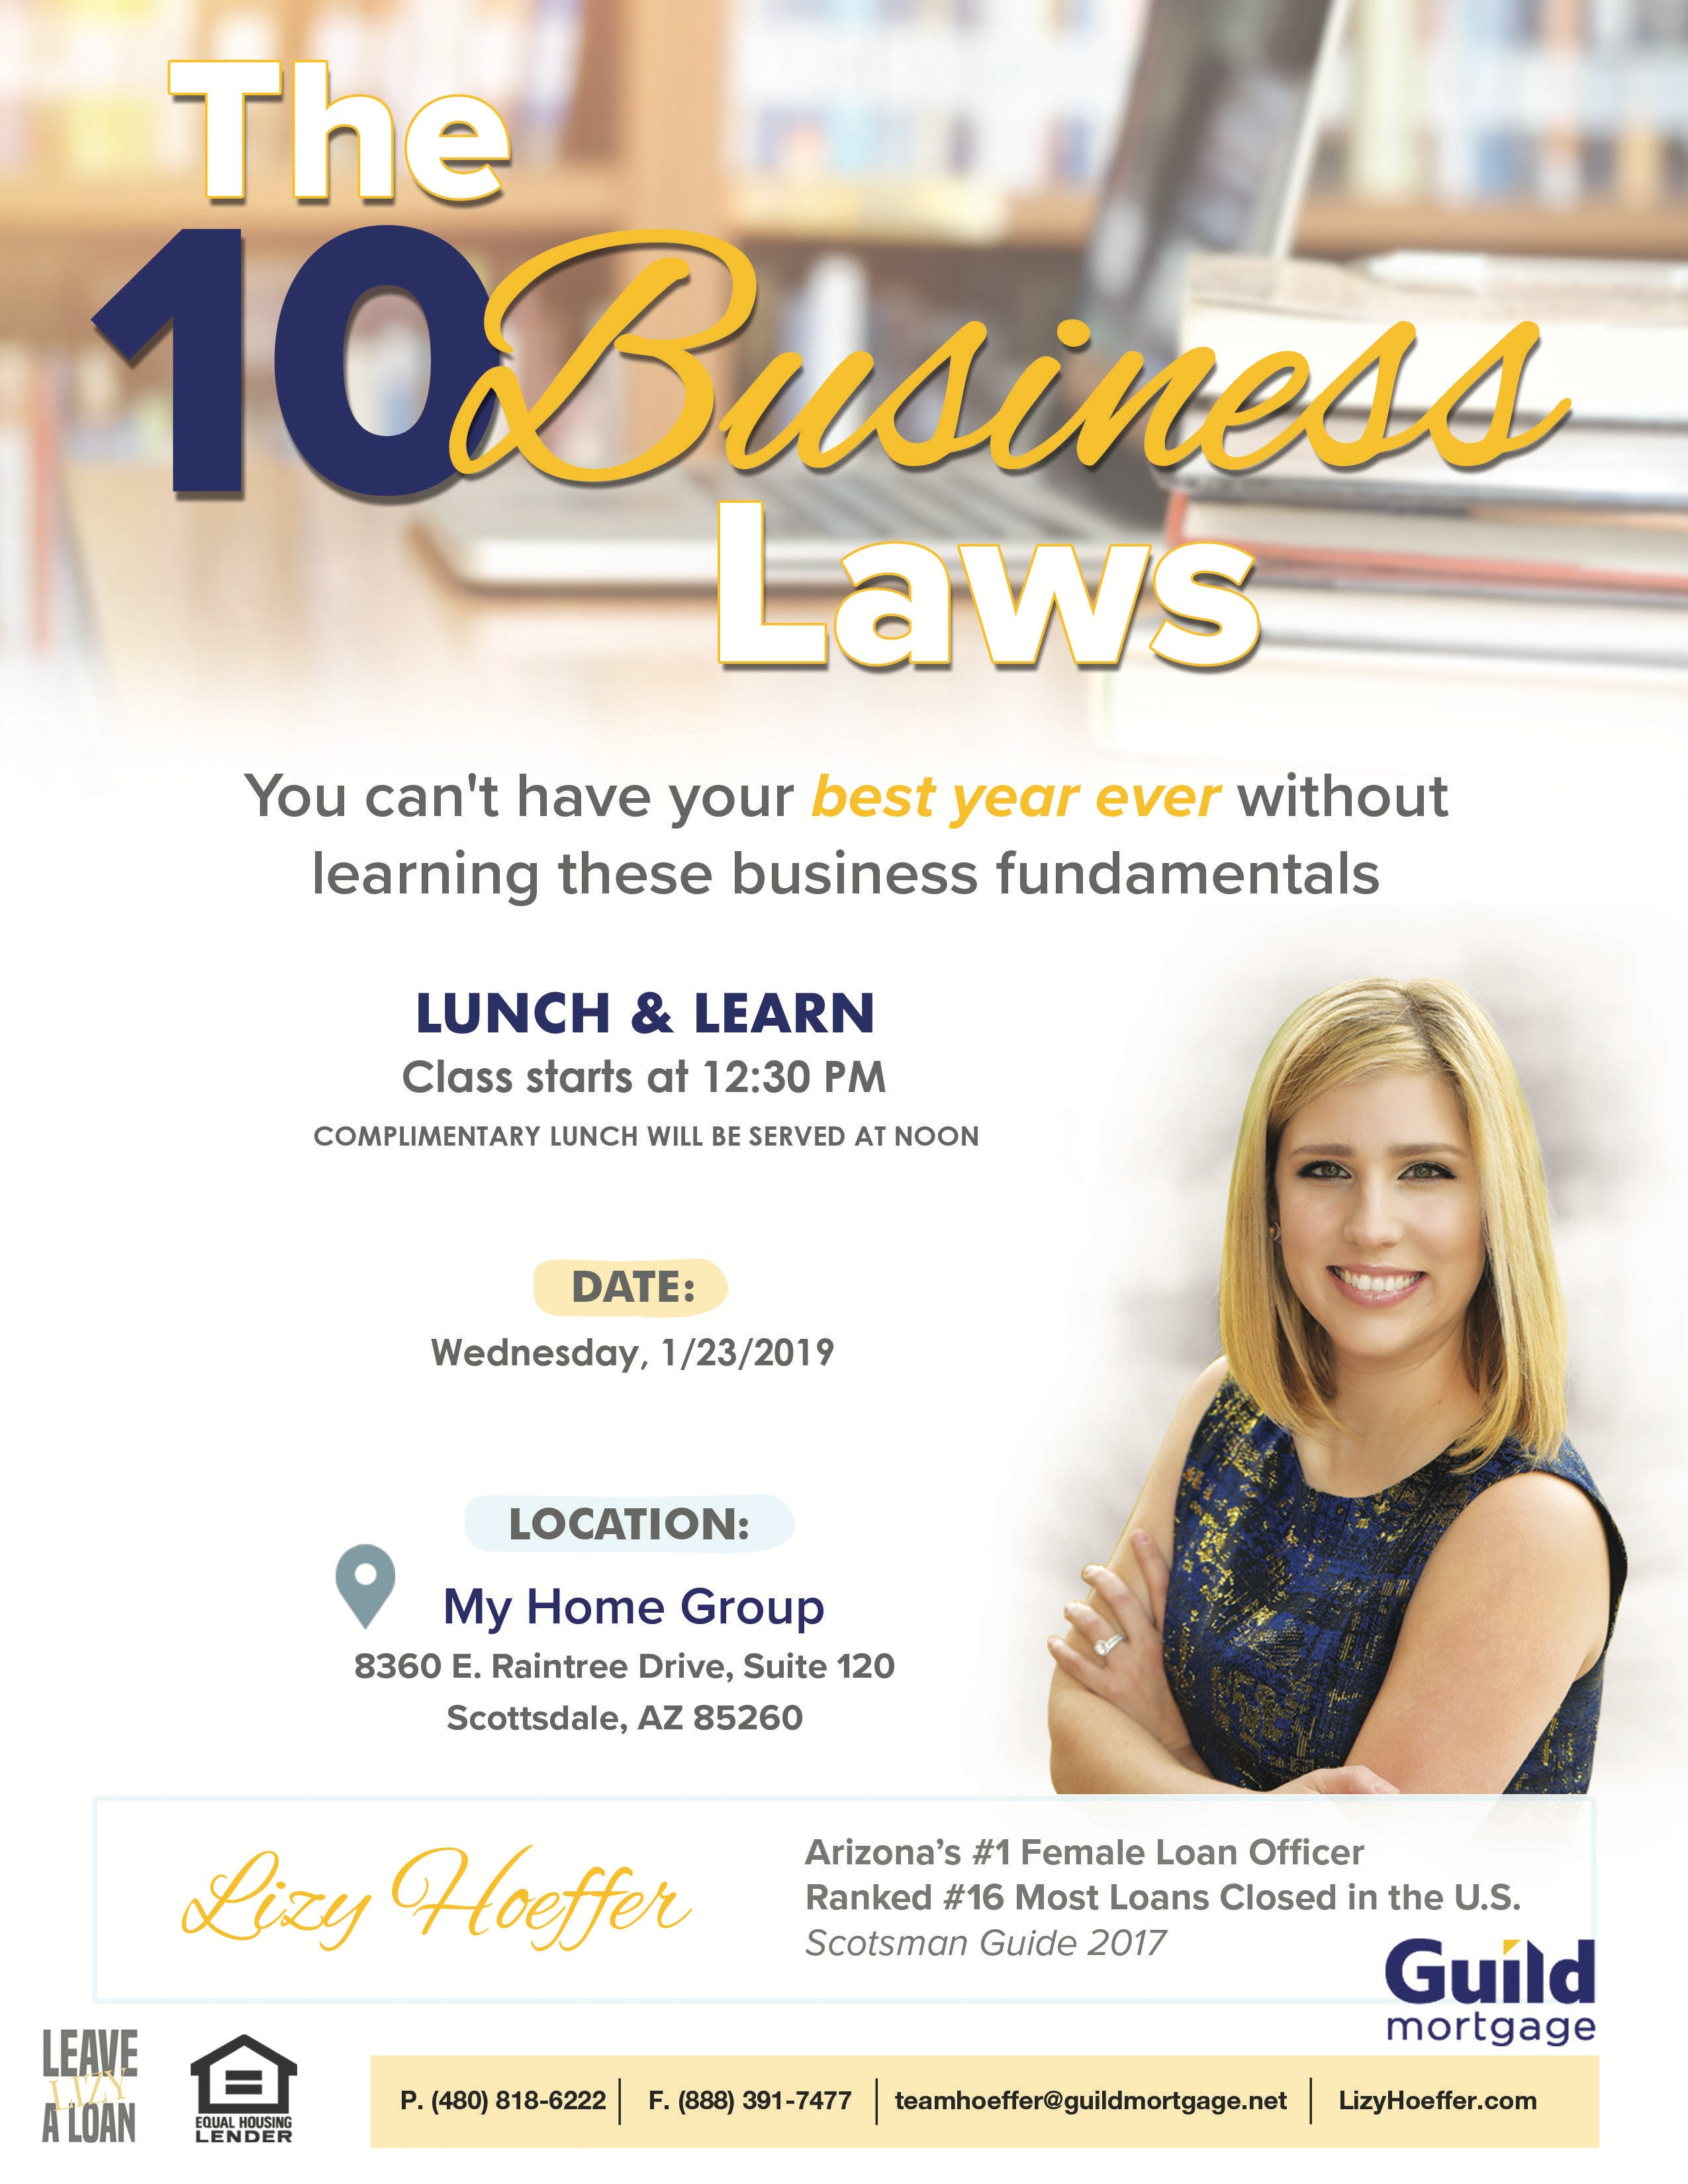 The 10 Business Laws with Lizy Hoeffer